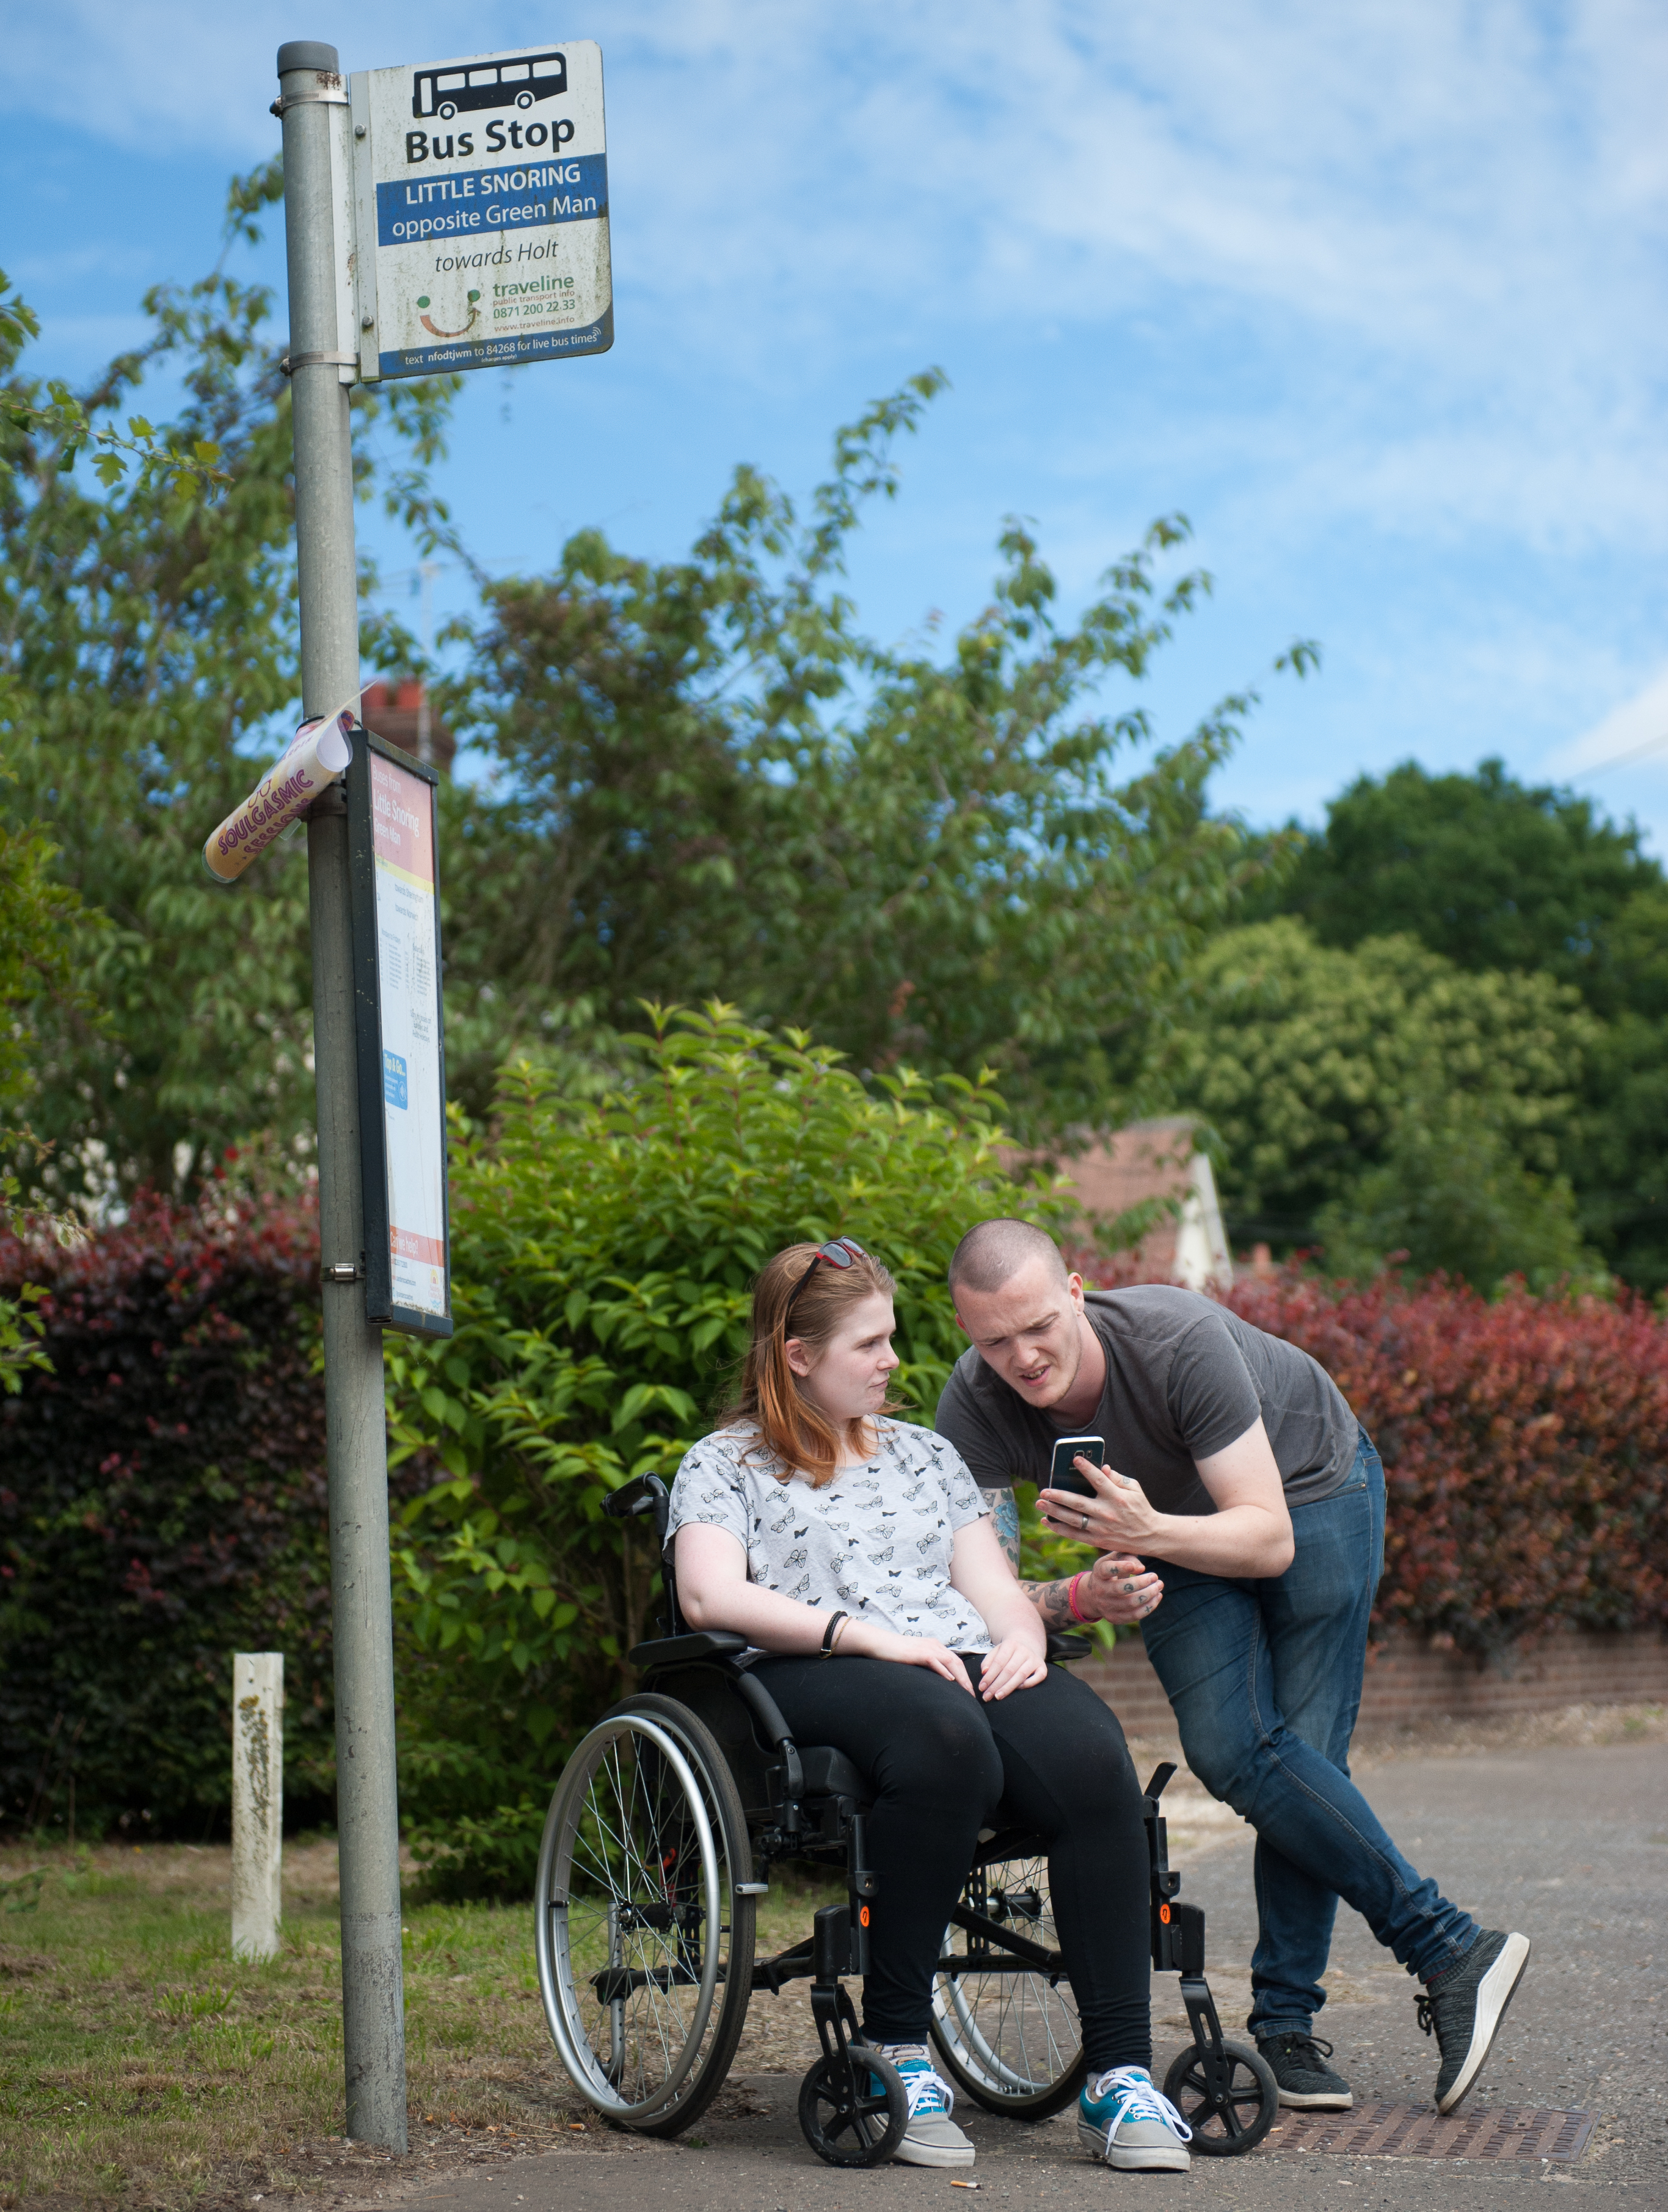 A man shows his phone screen to a woman in a wheelchair as they wait at a bus stop in a rural town